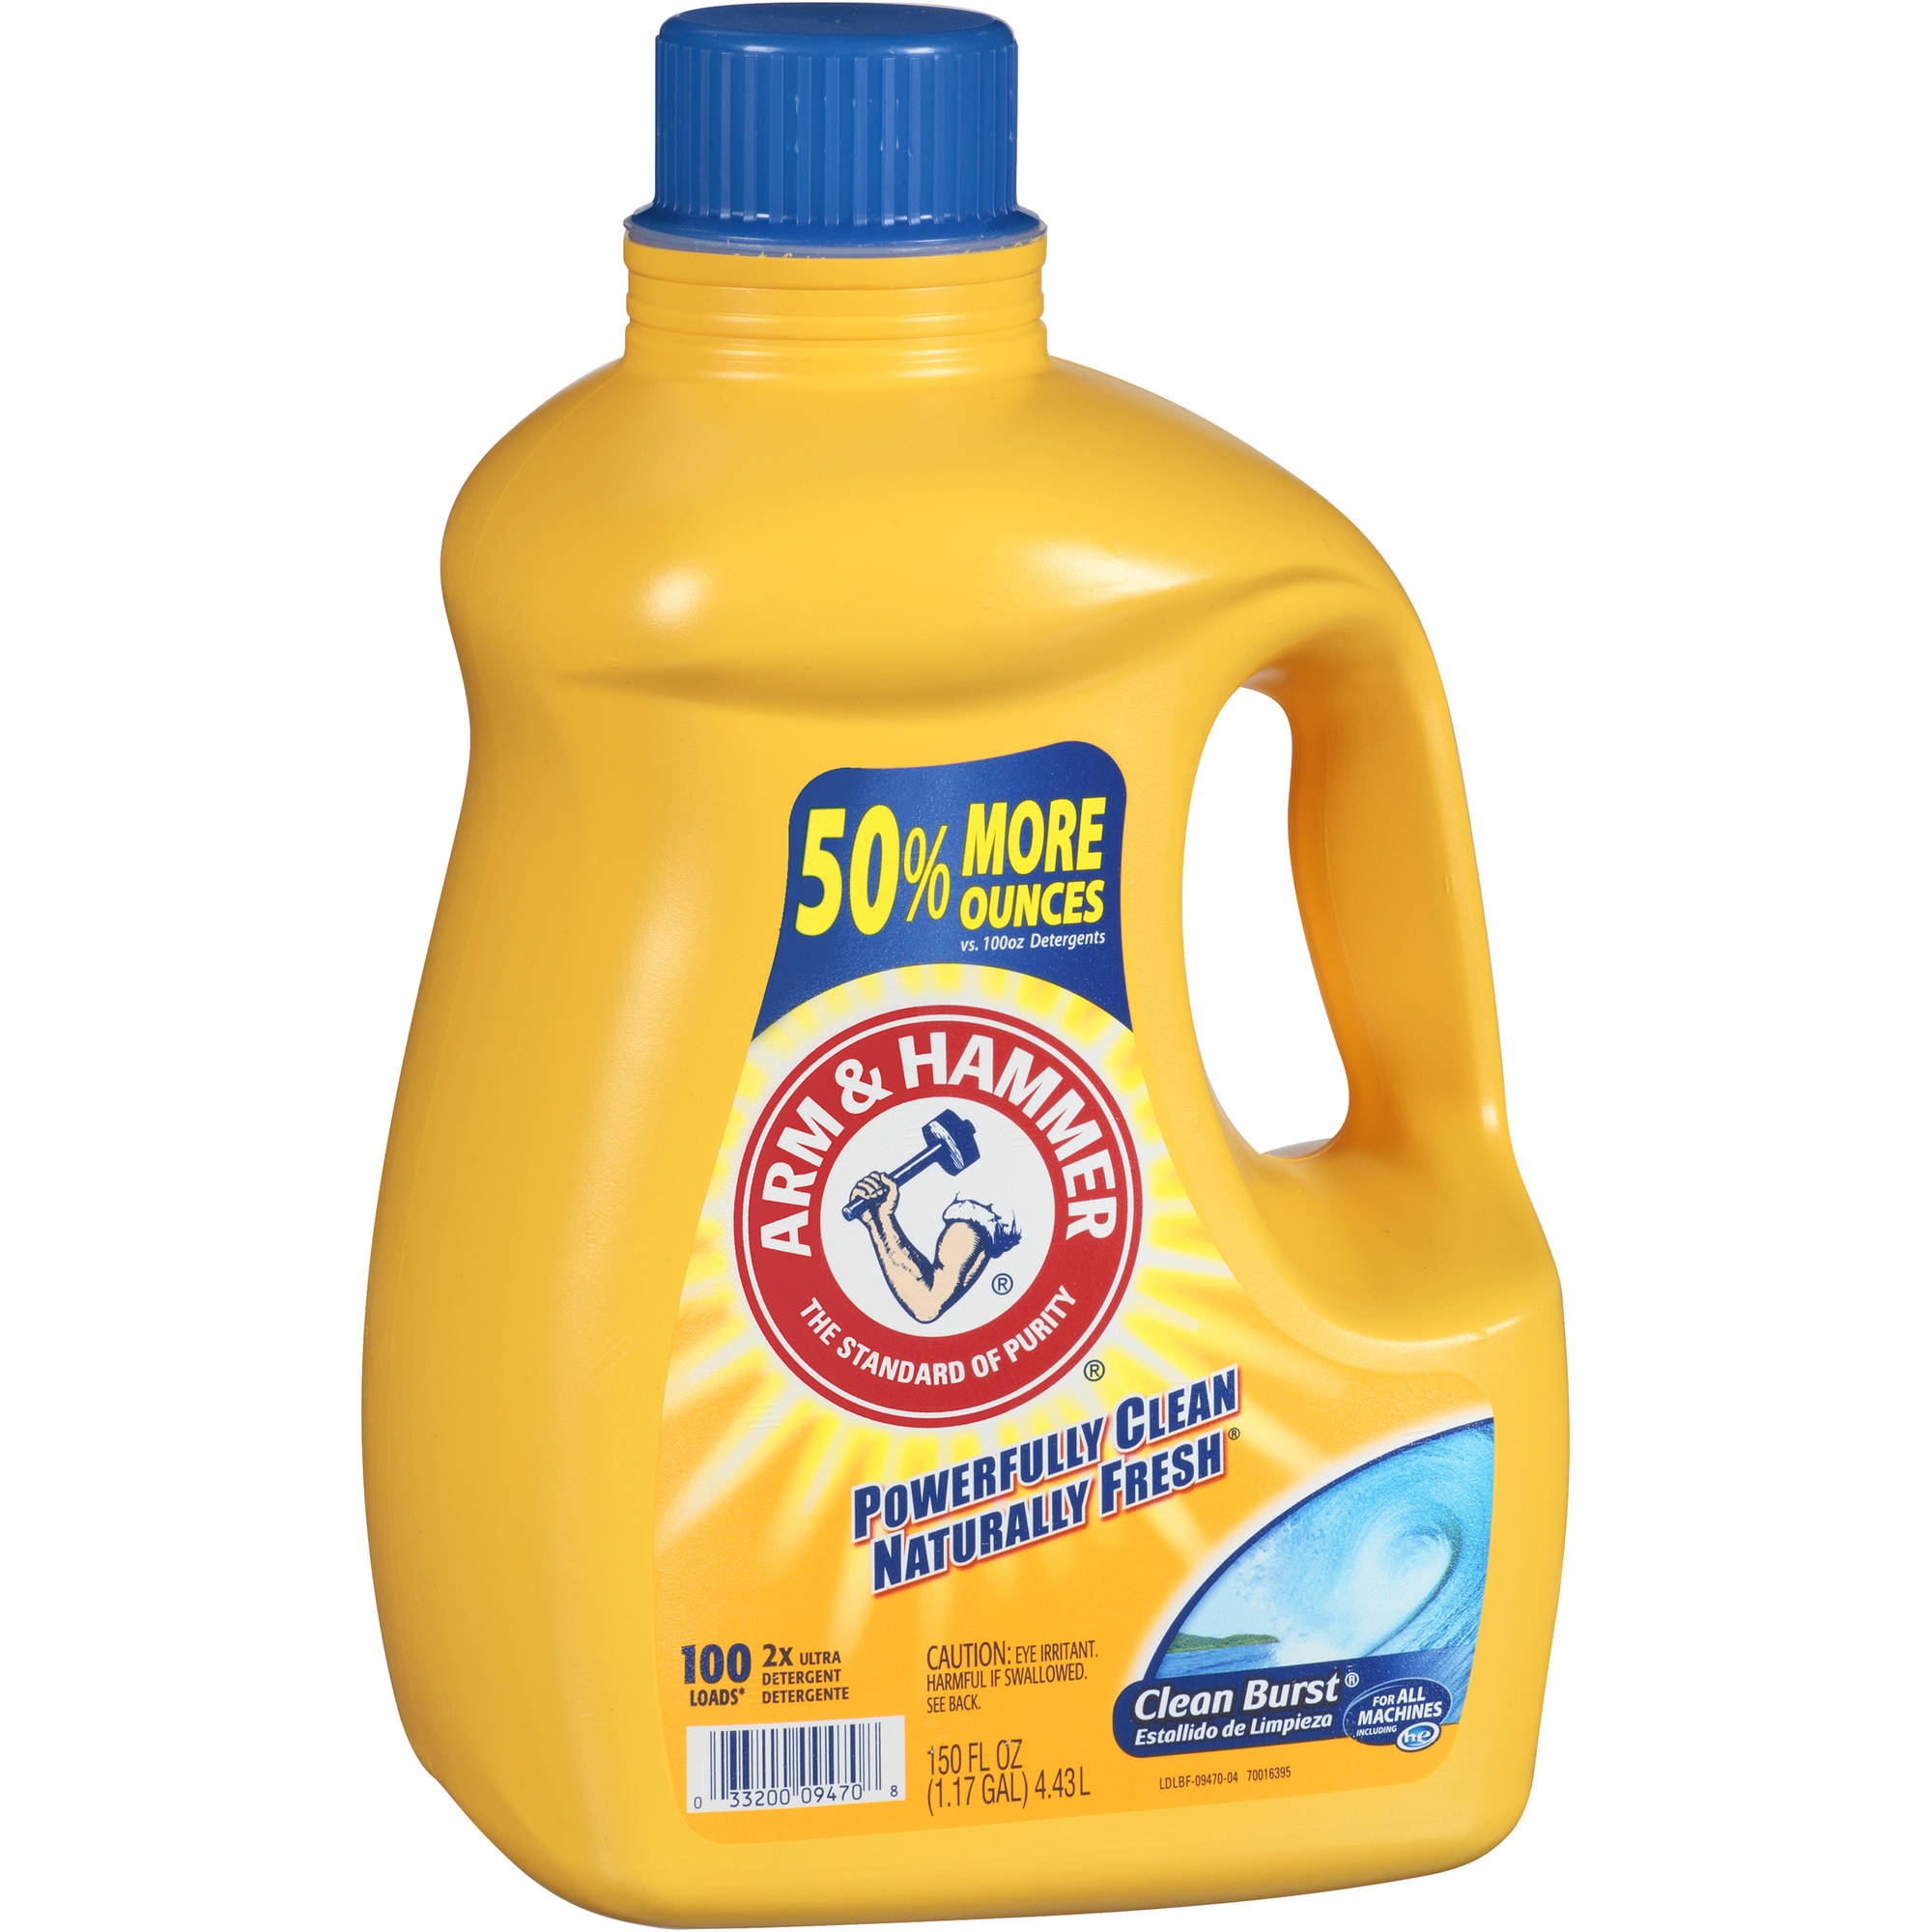 Cvs: Arm & Hammer Laundry Detergent Only $0.98! - Money Saving Mom - Free Printable Coupons For Arm And Hammer Laundry Detergent